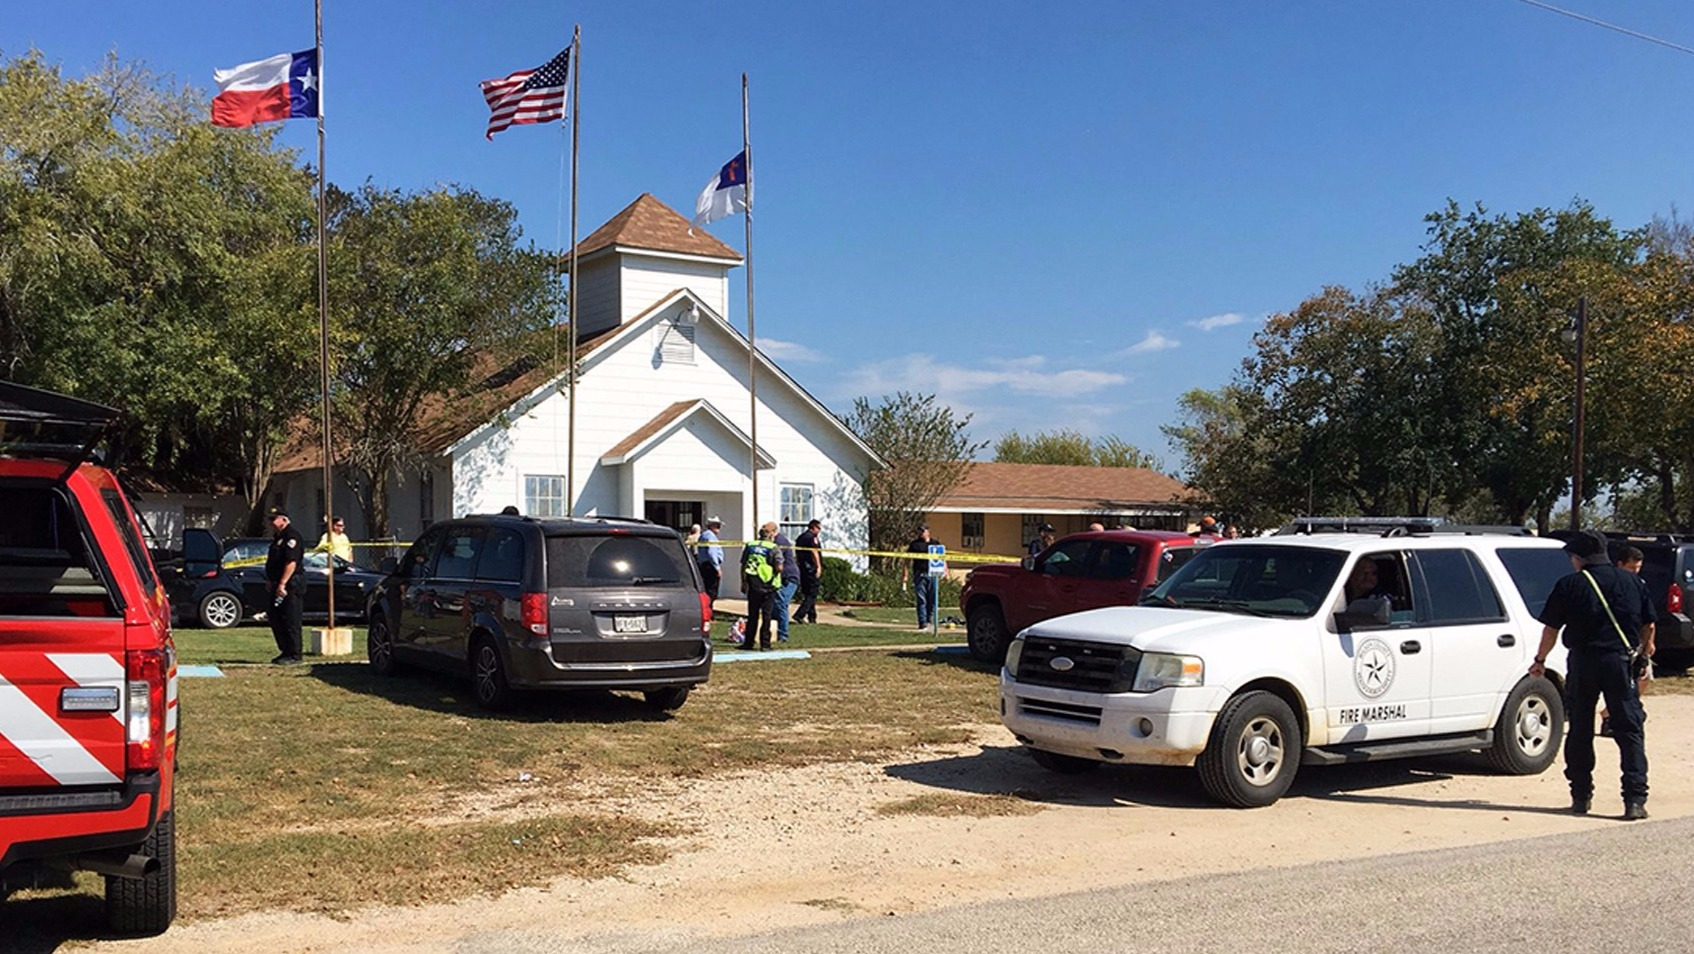 Gunman opens fire at Texas church, killing at least 20